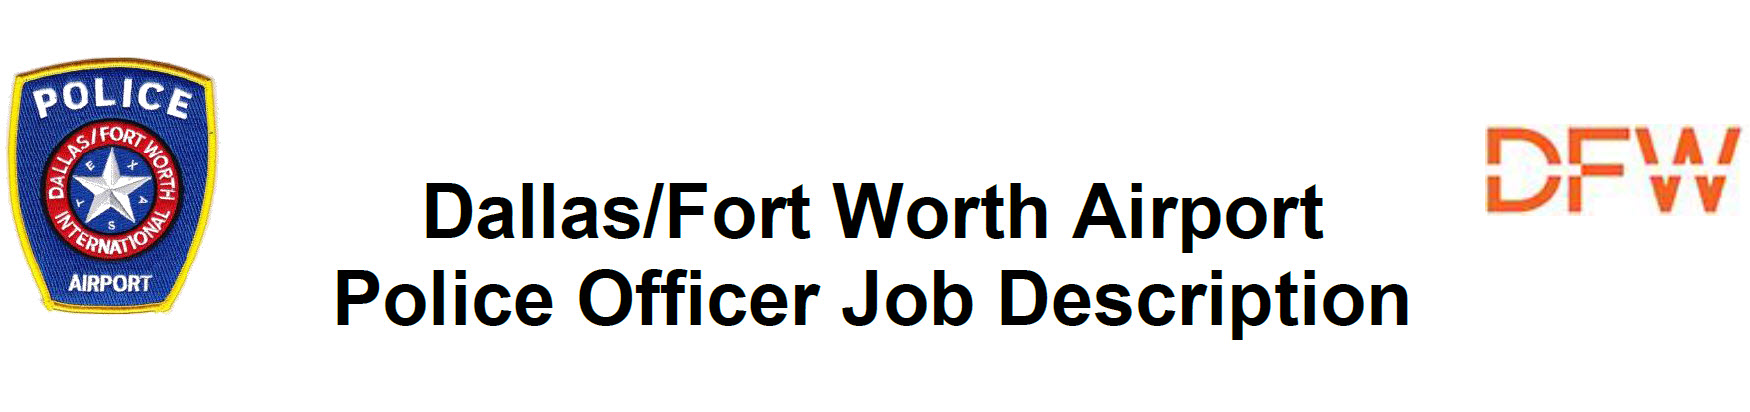 Dallas/Fort Worth Airport Department of Public Safety, TX Public Safety Jobs